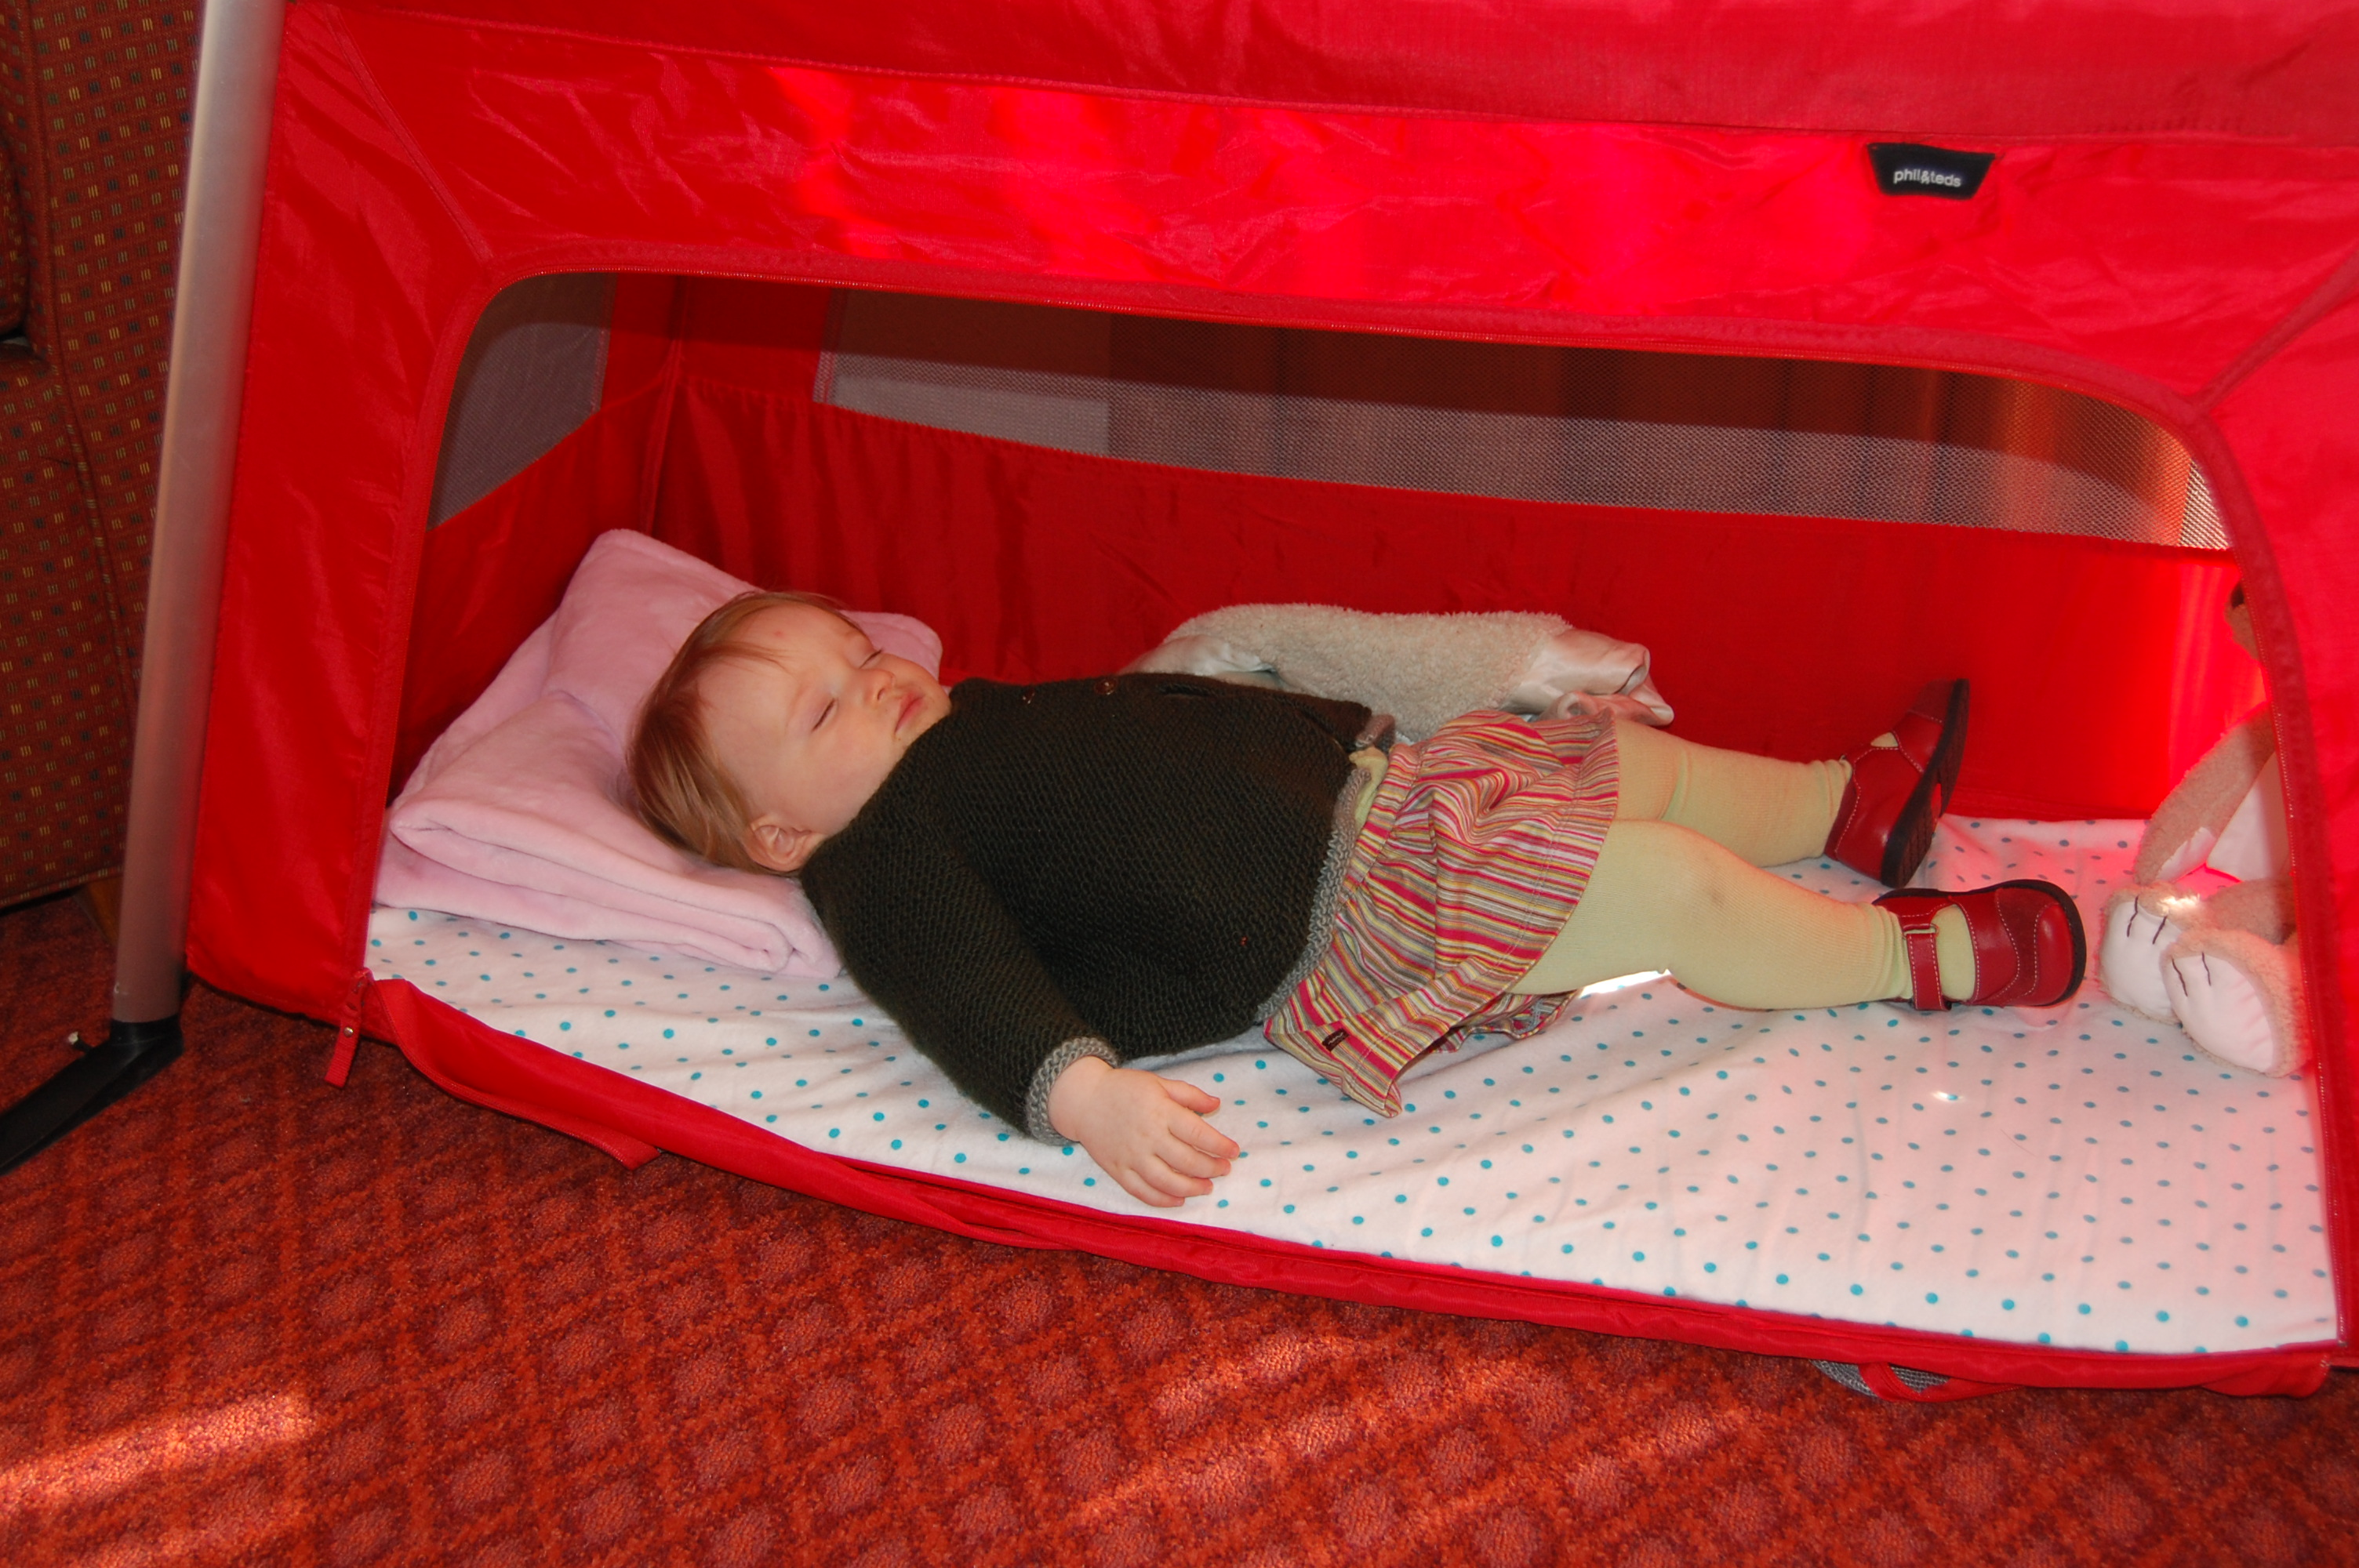 traveller nursery and cribs crib reviews travel how cot review to it cots night other phil does compare time teds beds